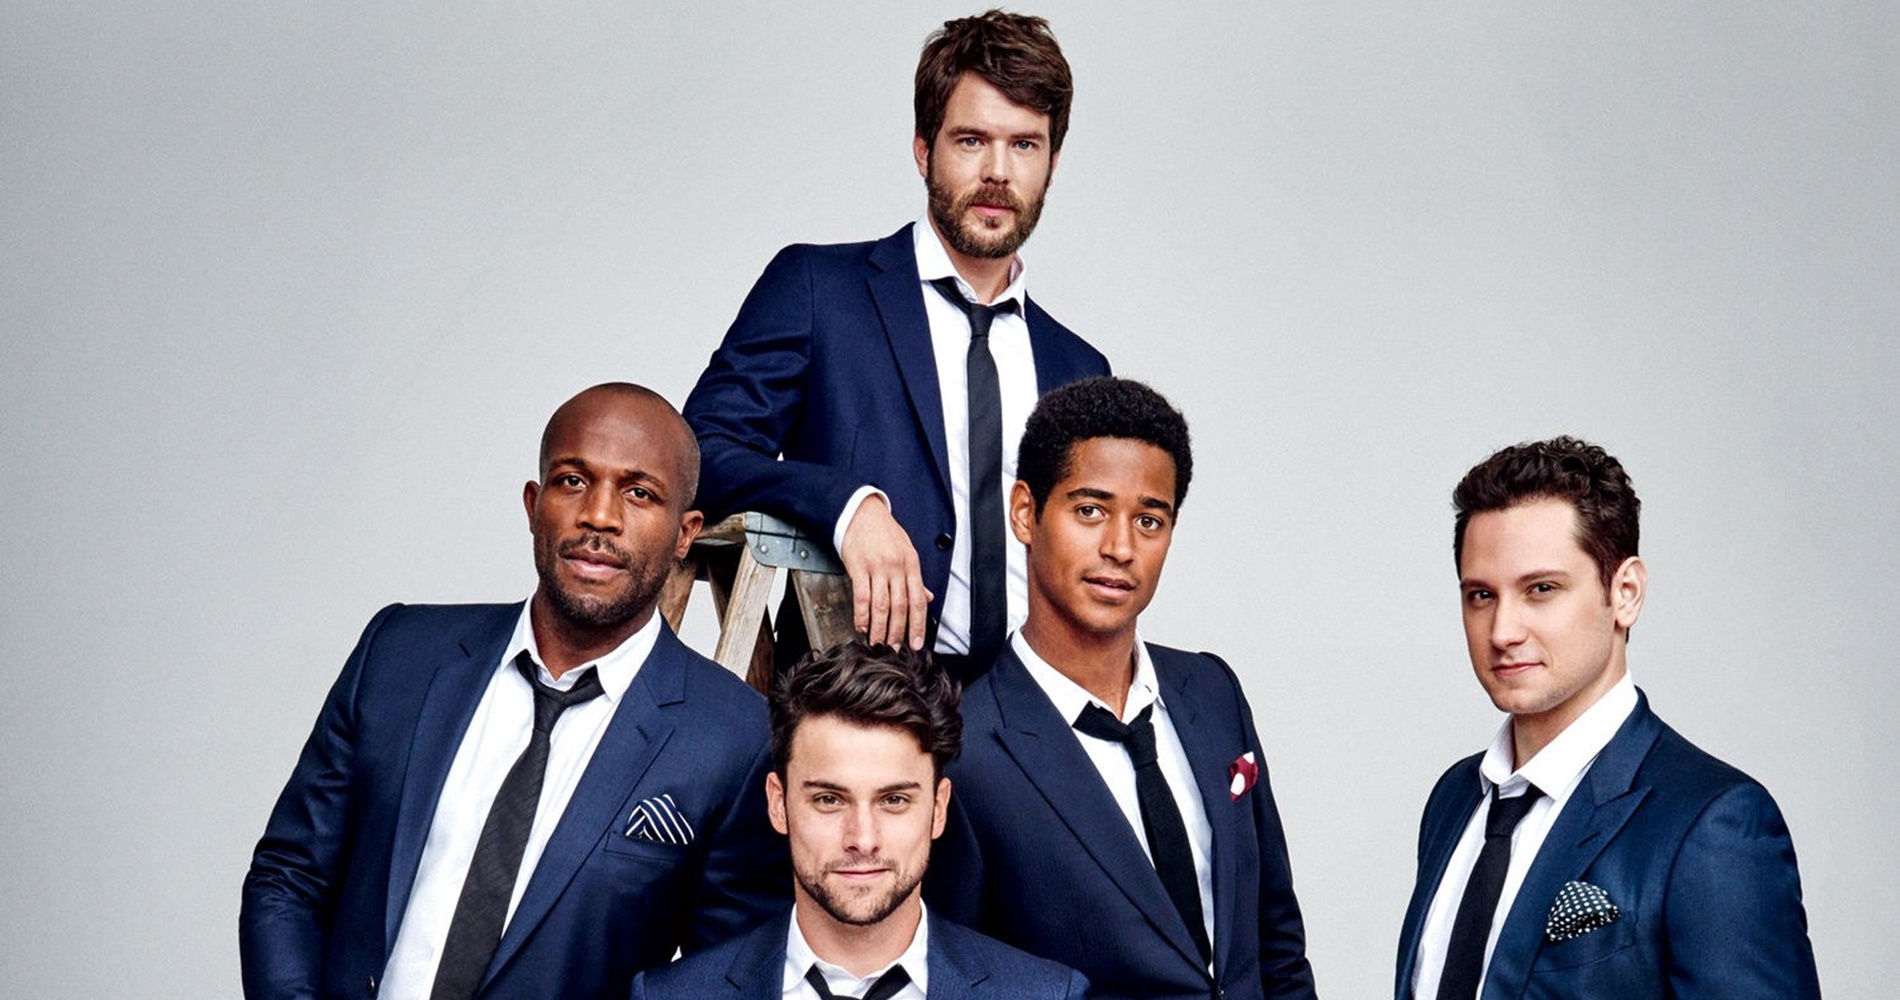 The male cast members of How To Get Away With Murder., pop culture, movies/tv, wdc-slideshow